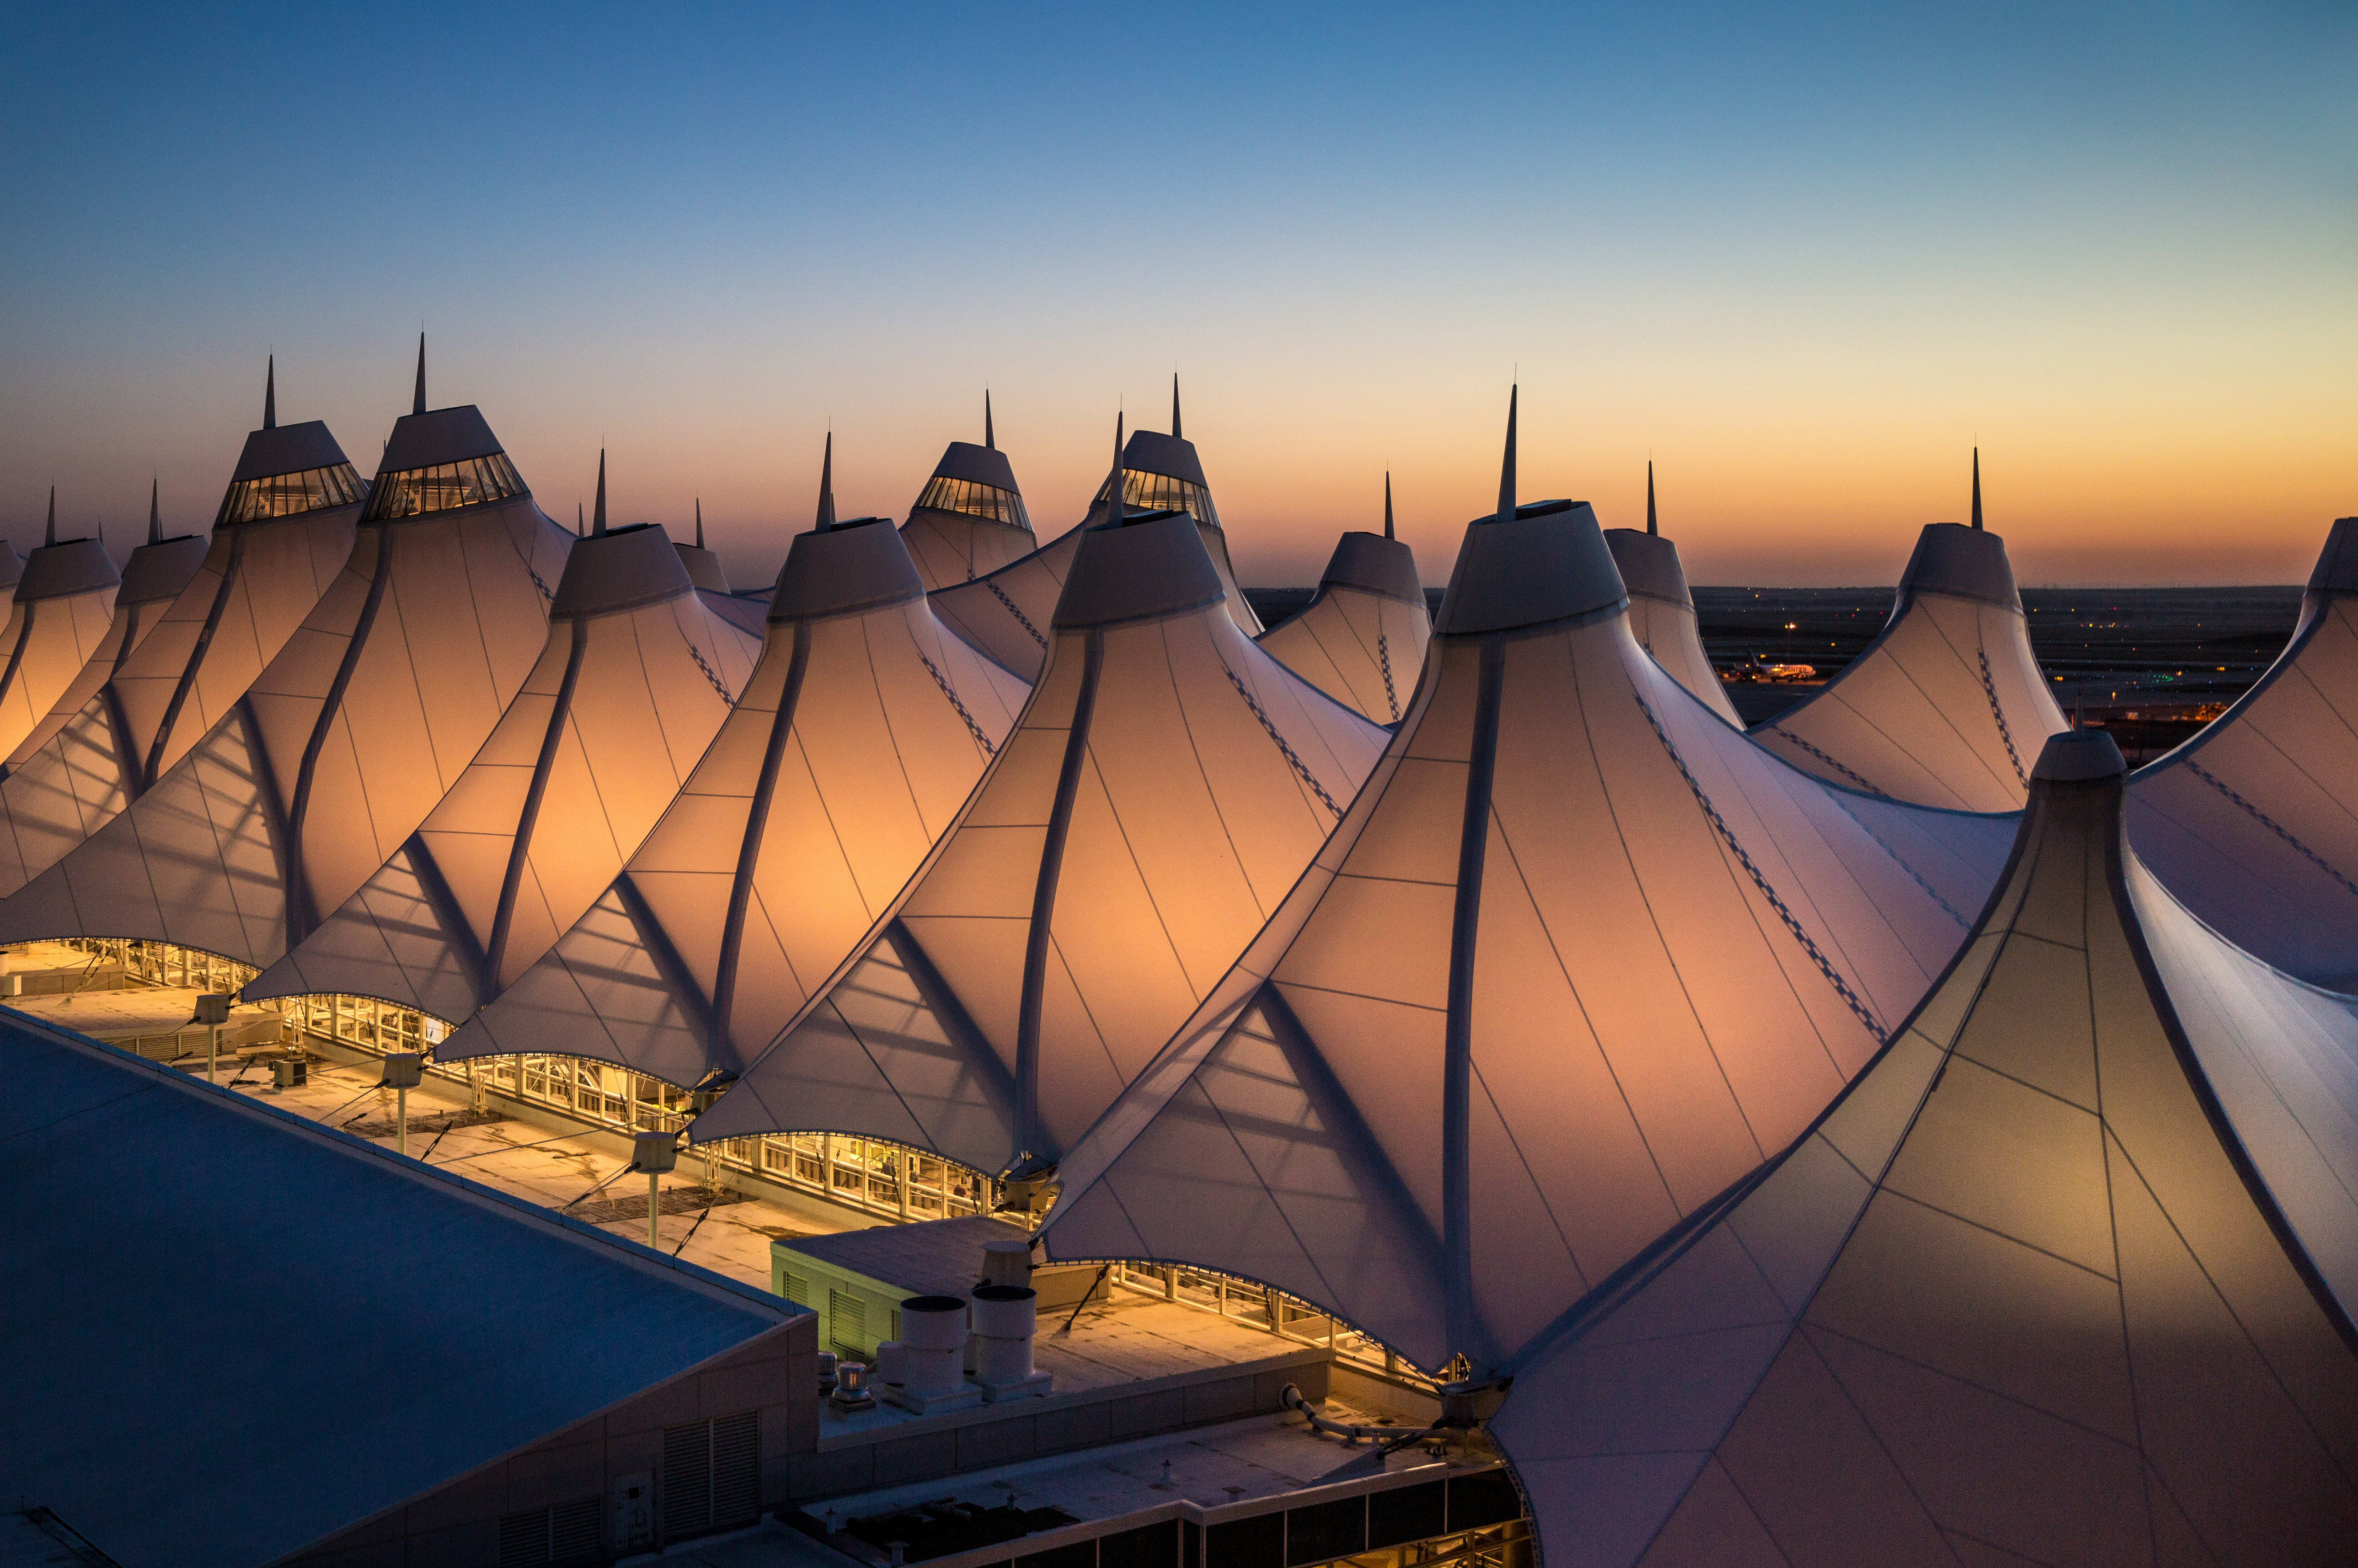 The unusual fabric-covered tent (or teepee) construction of the main airport terminal, designed to be reflective of the nearby snow-capped Rocky Mountains